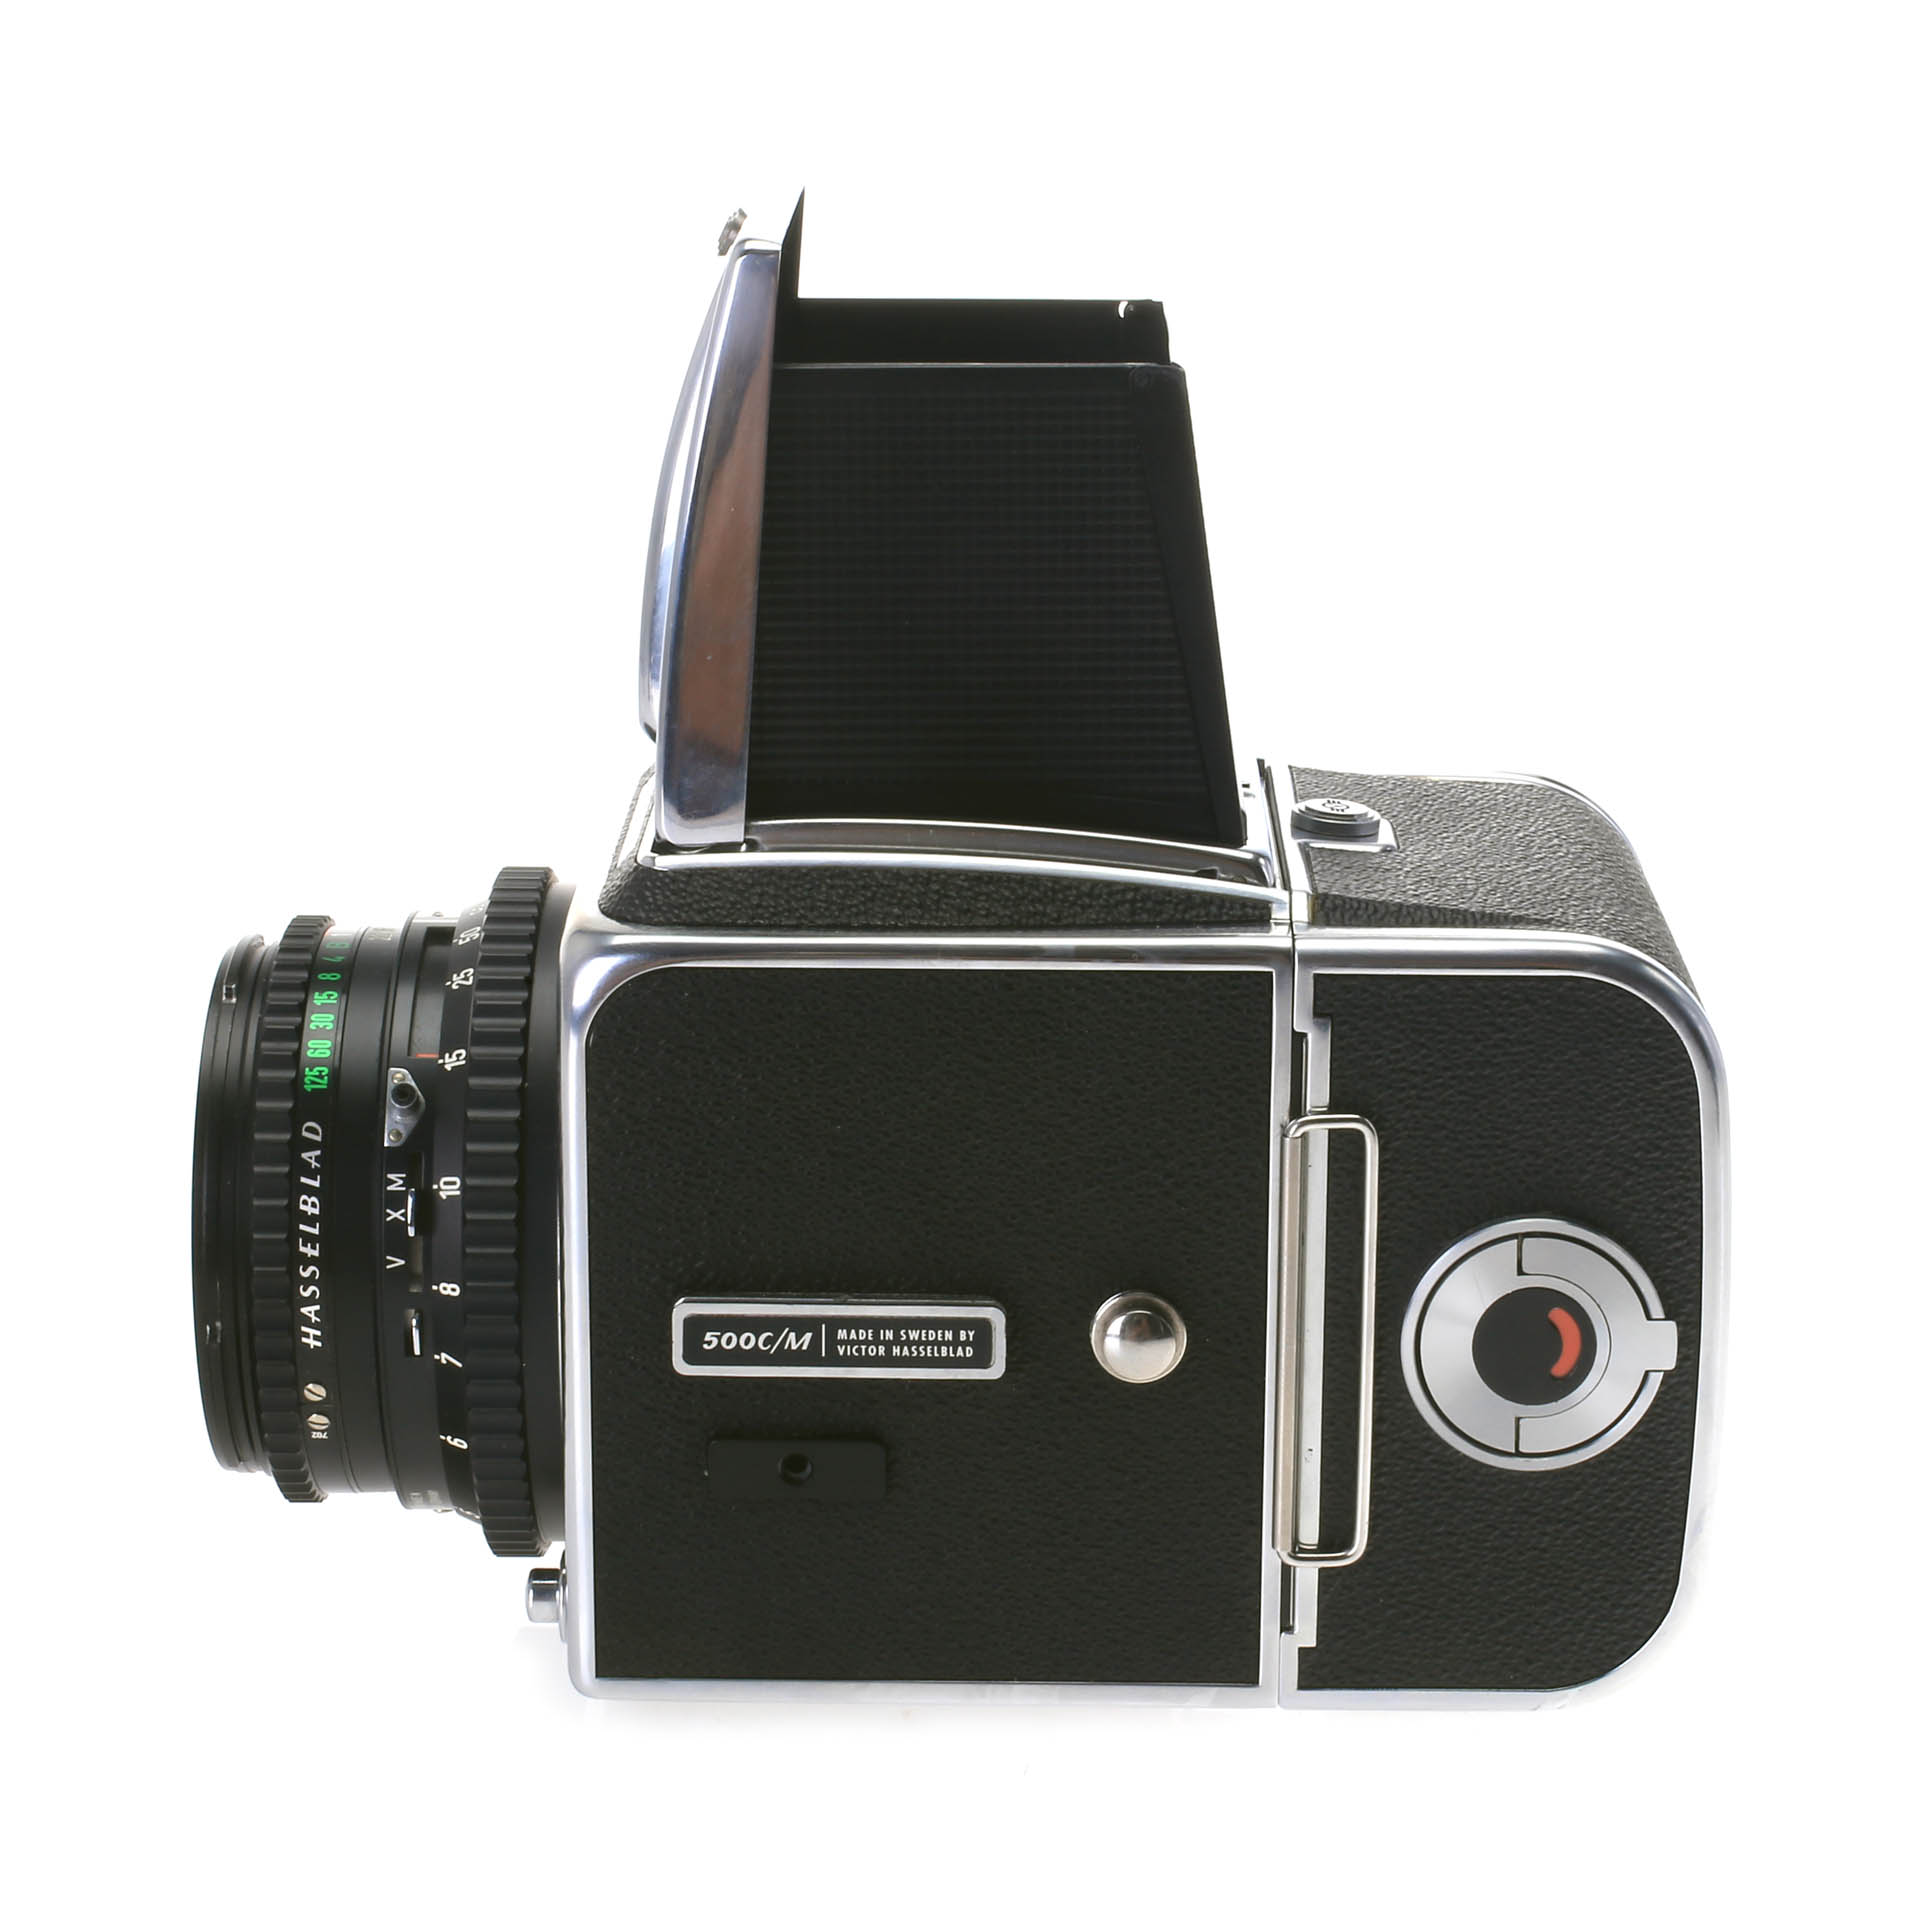 Buy HASSELBLAD 500CM KIT W 80MM - National Camera Exchange